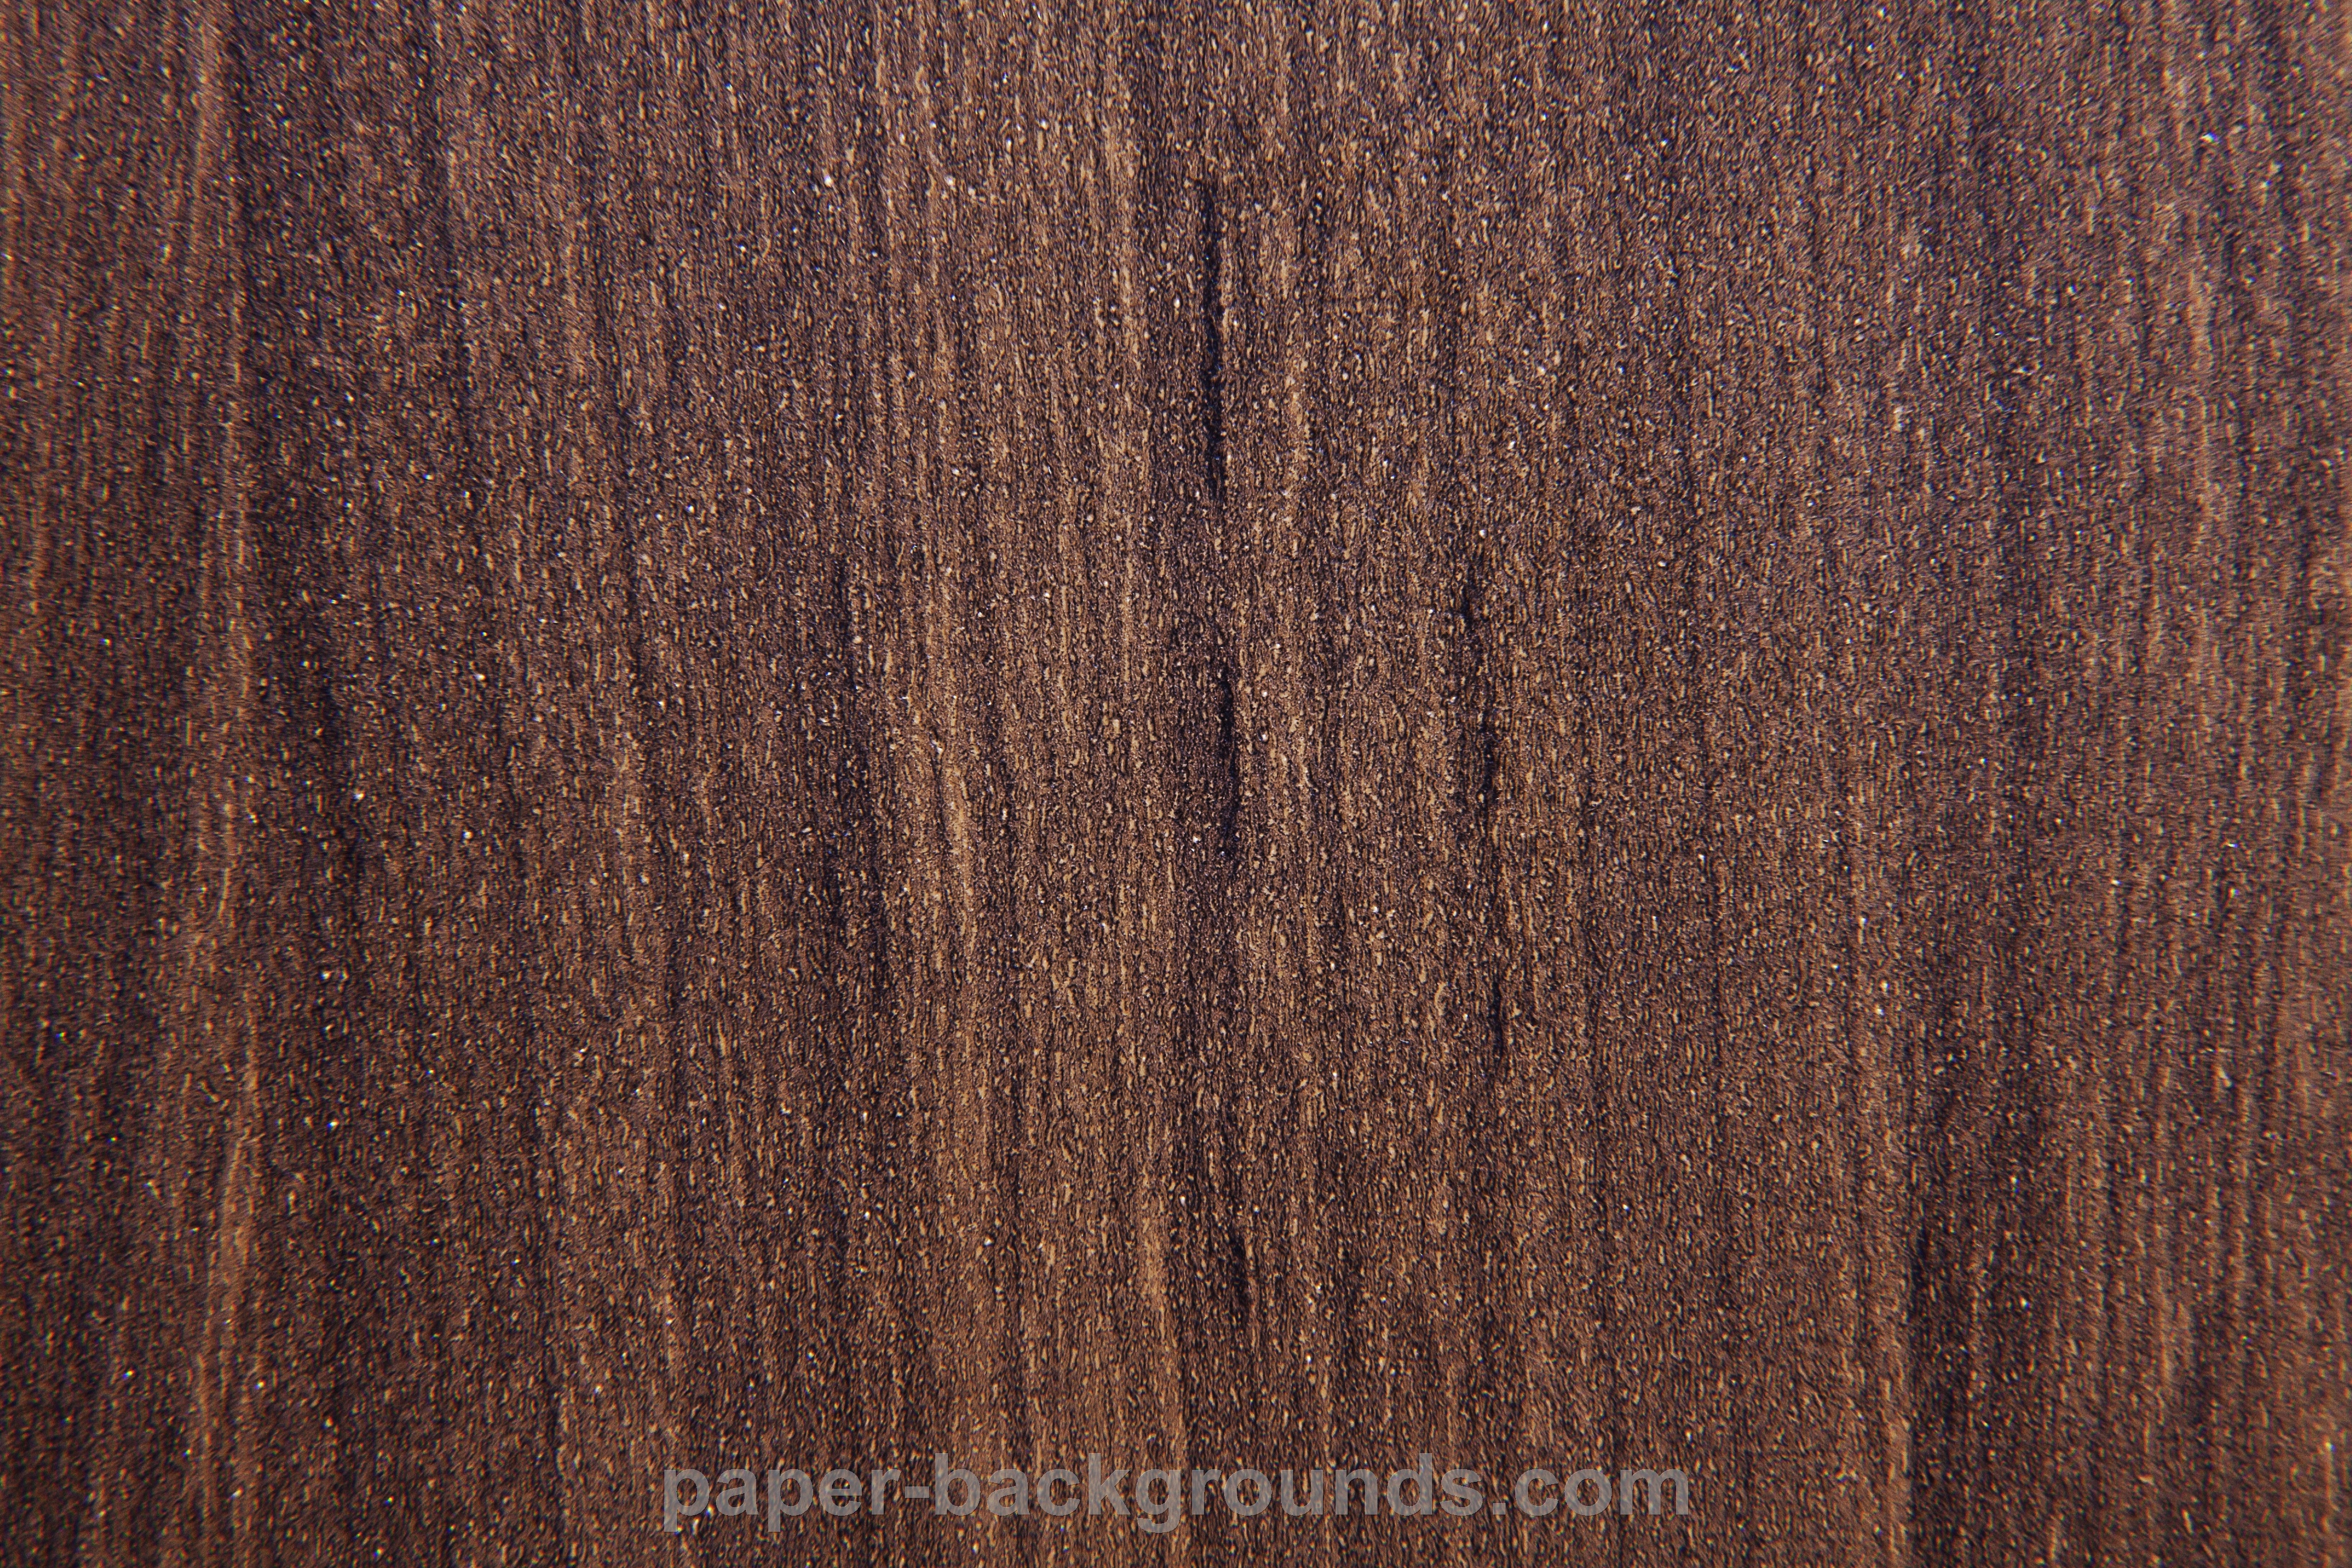 Wood background free stock photos download 11934 Free